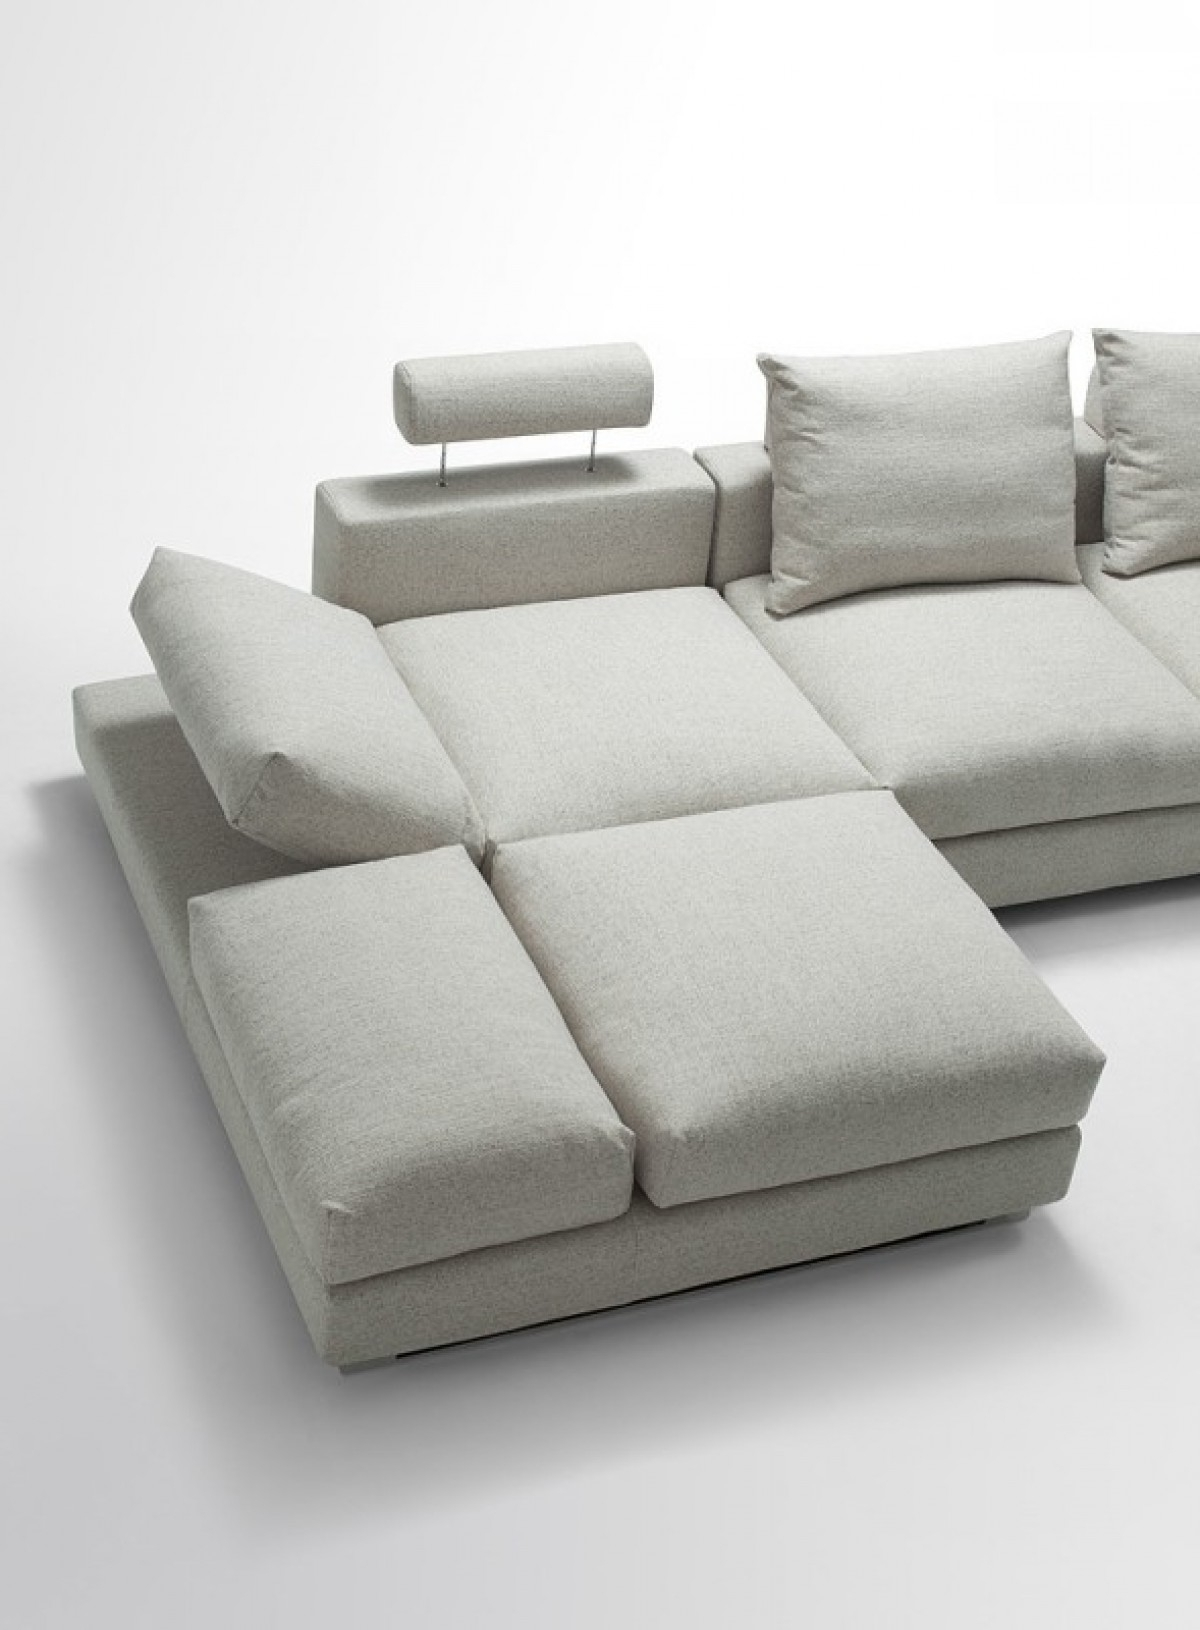 Divani Casa Vasto – Modern Fabric Sectional Sofa With Down Feather For Well Known Down Feather Sectional Sofas (View 3 of 15)